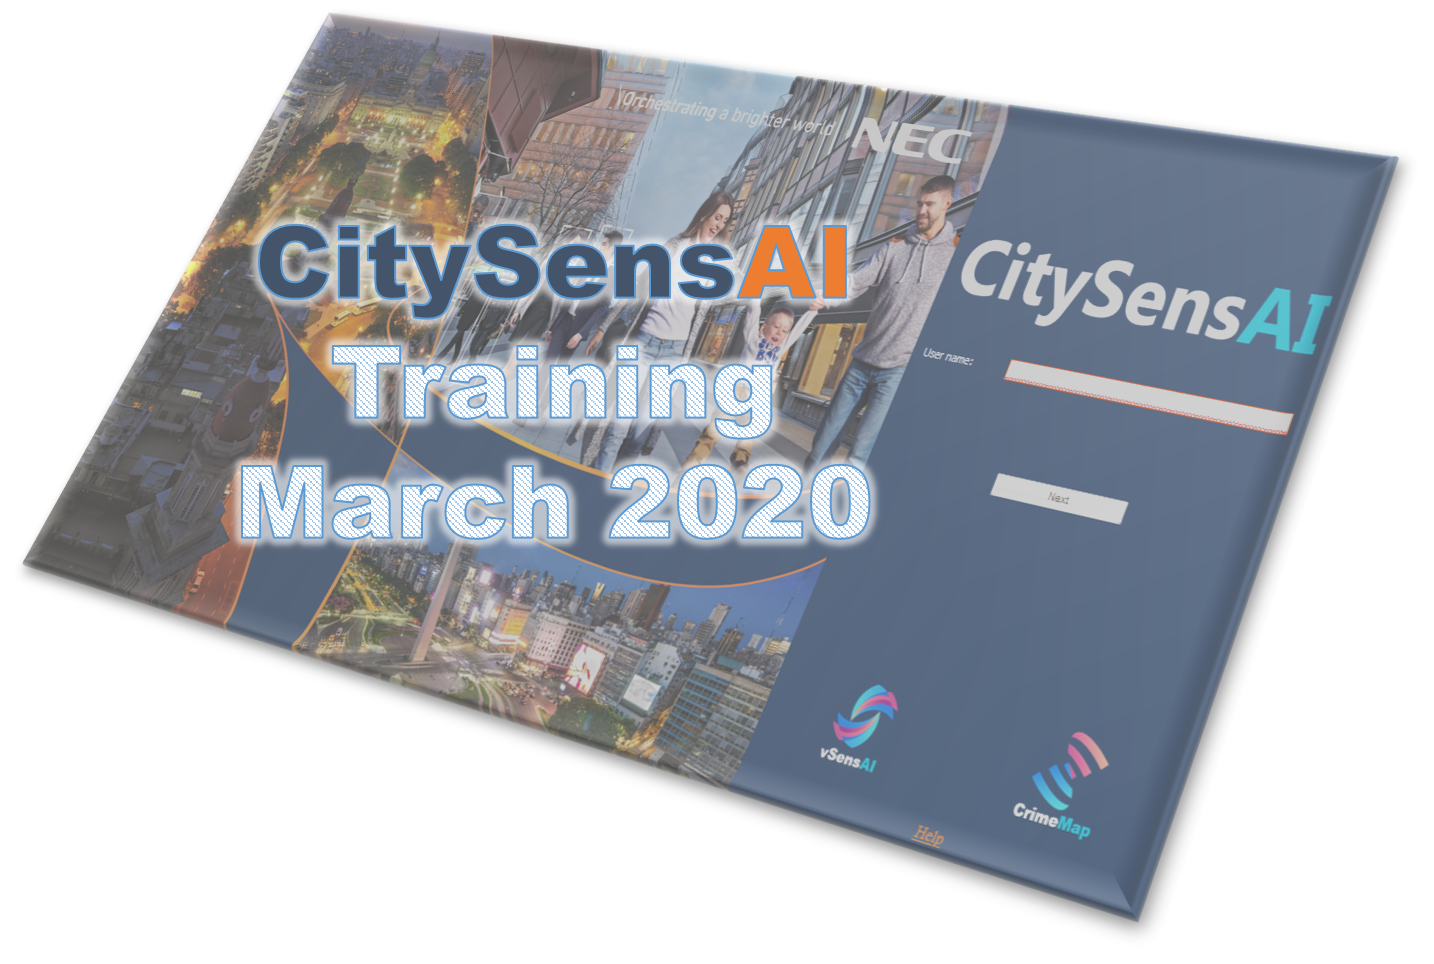 Course Image CitySensAI Training March 2020